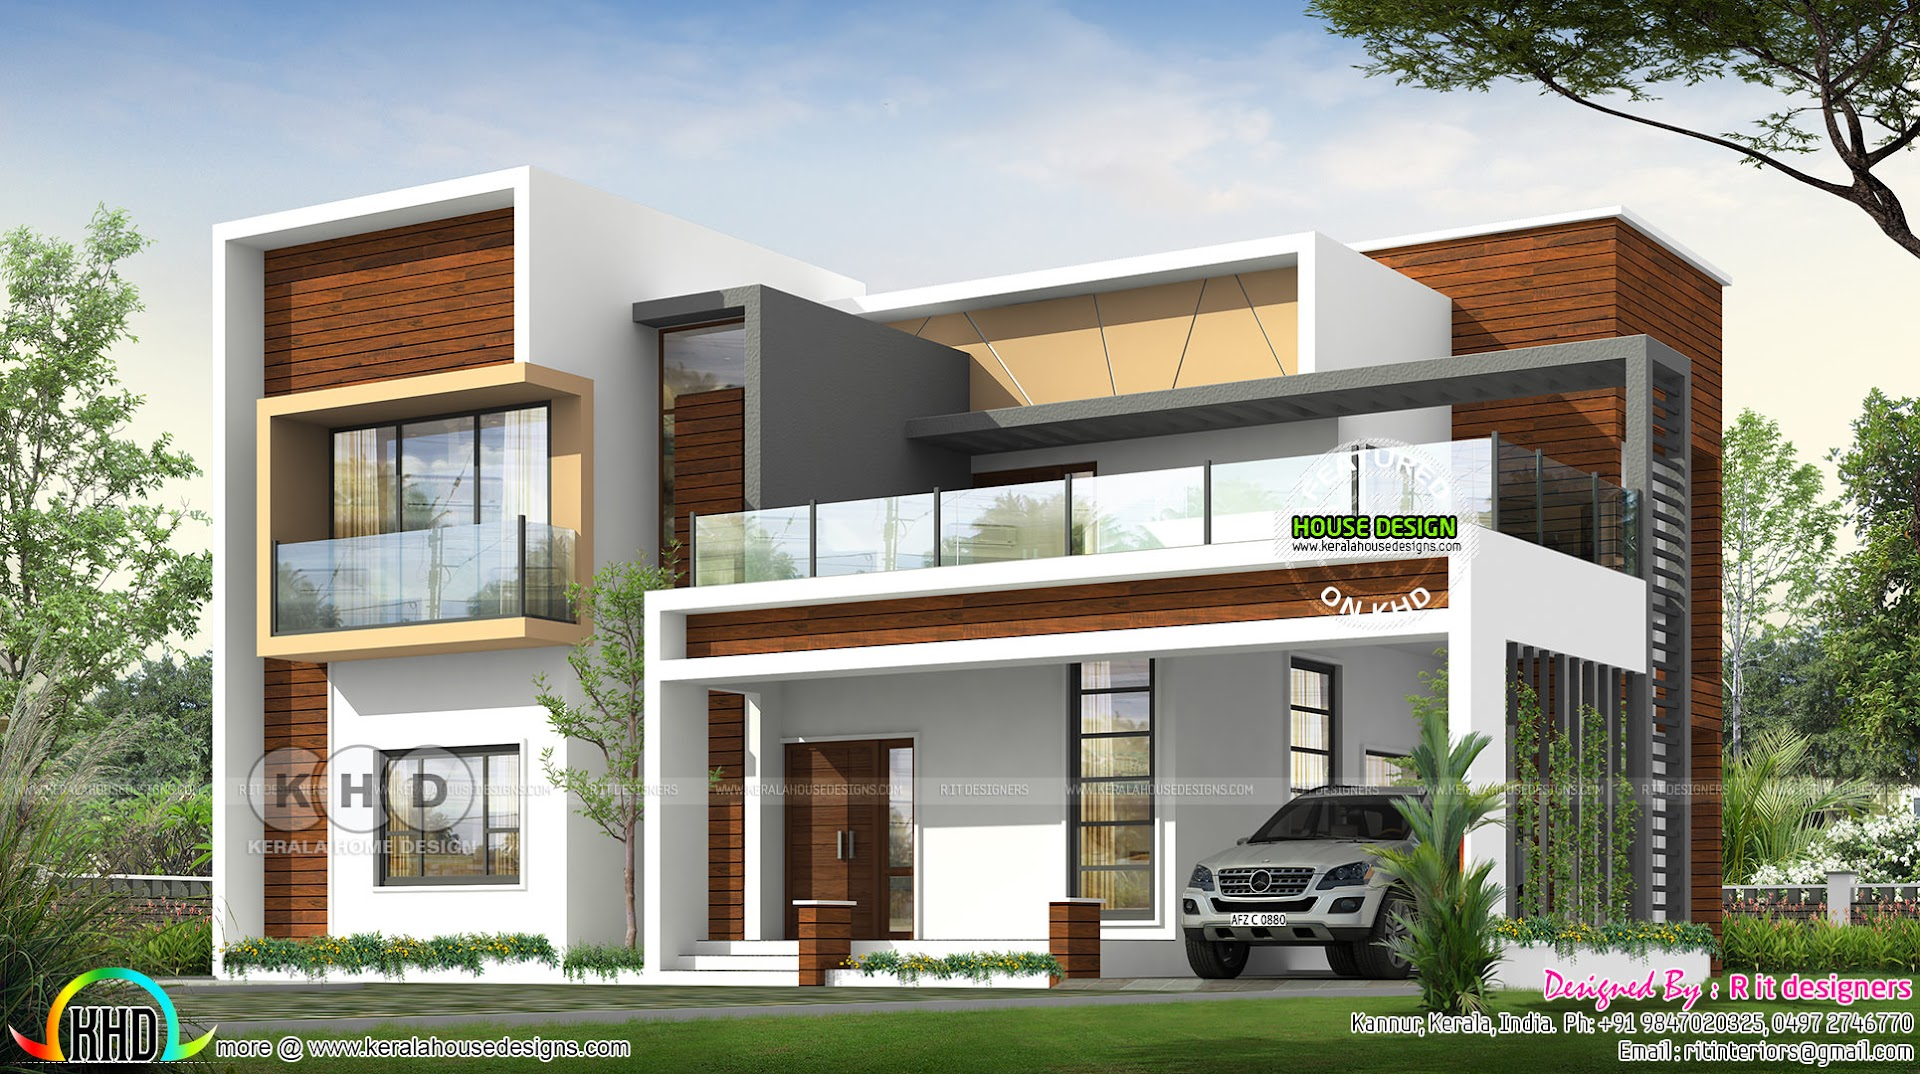 2852 square feet flat roof contemporary house plan kerala home rh keralahousedesigns com